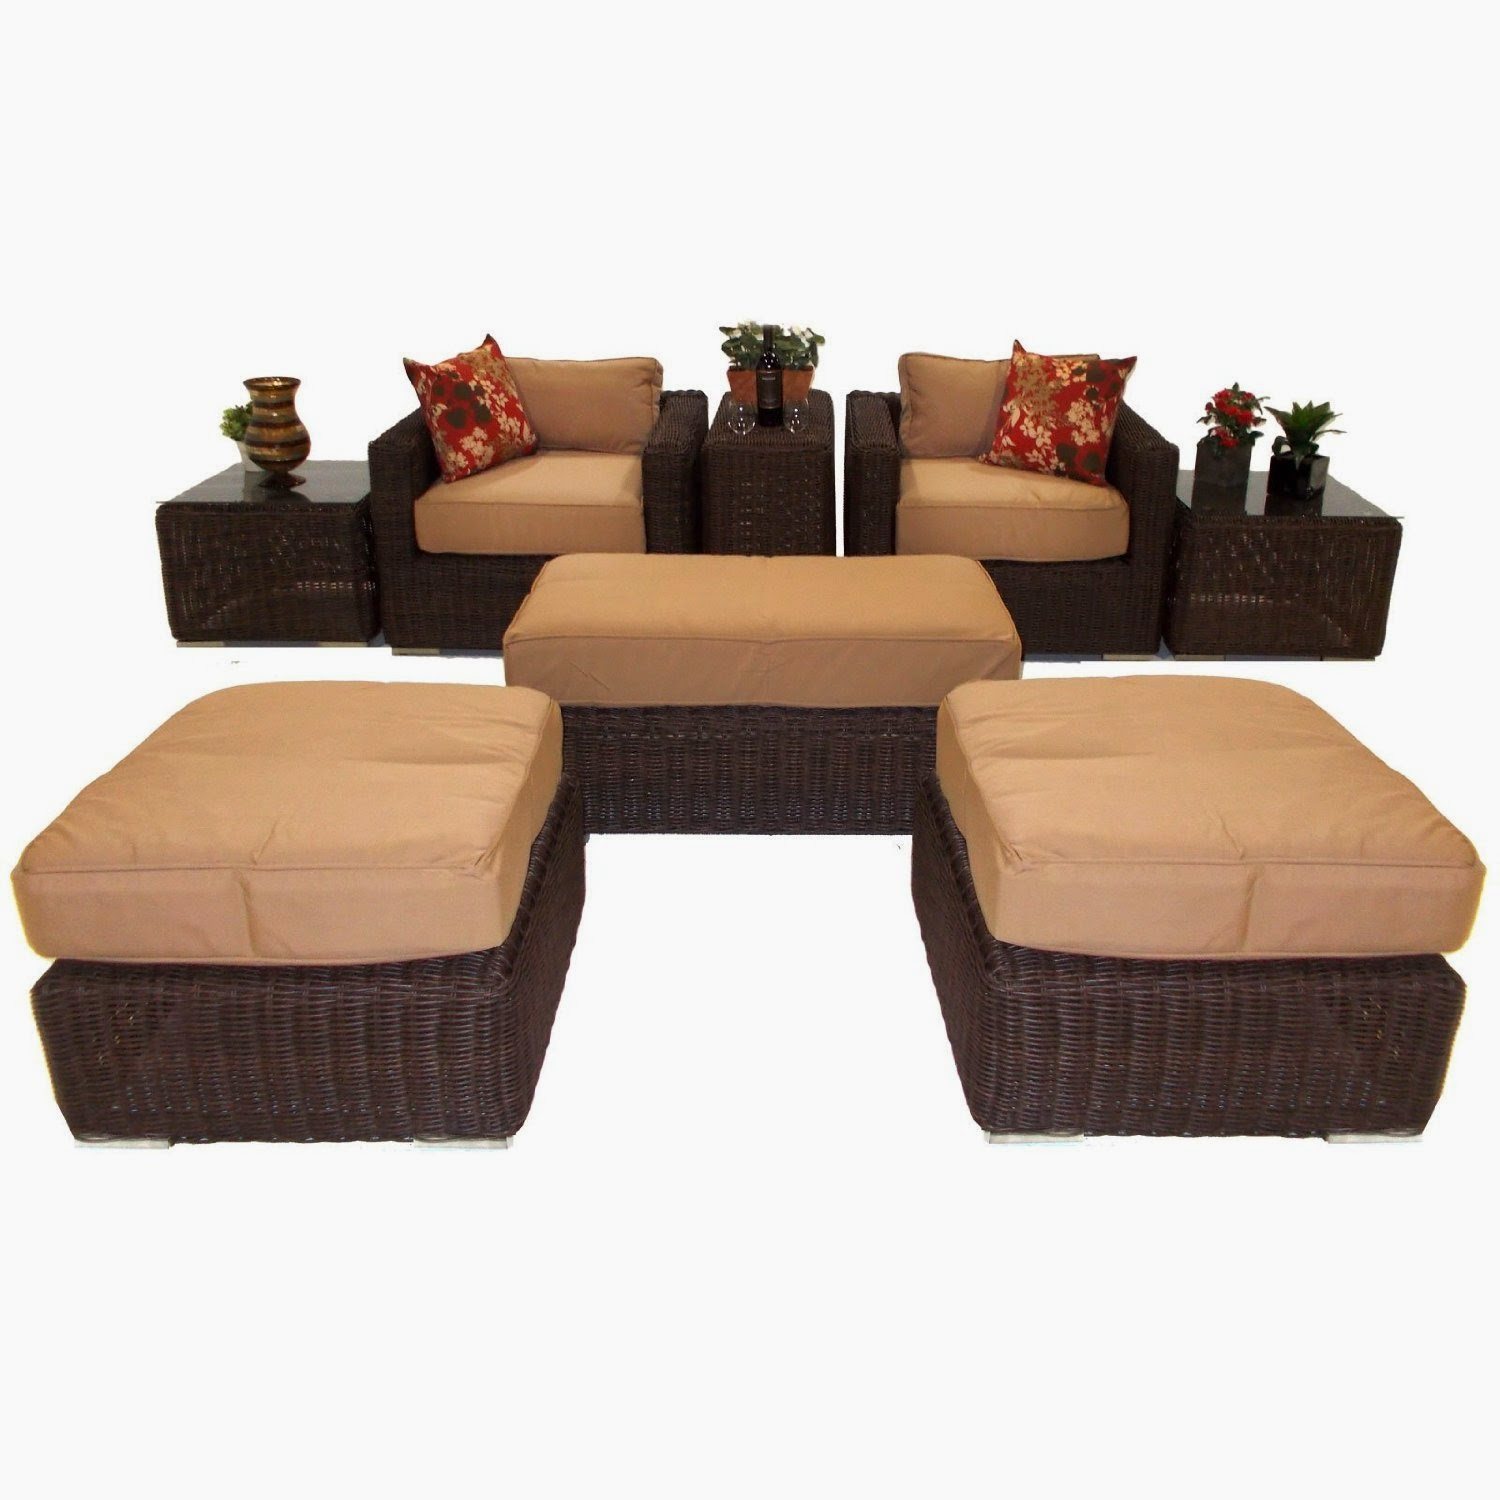 Patio Furniture TK Classics Patio Furniture